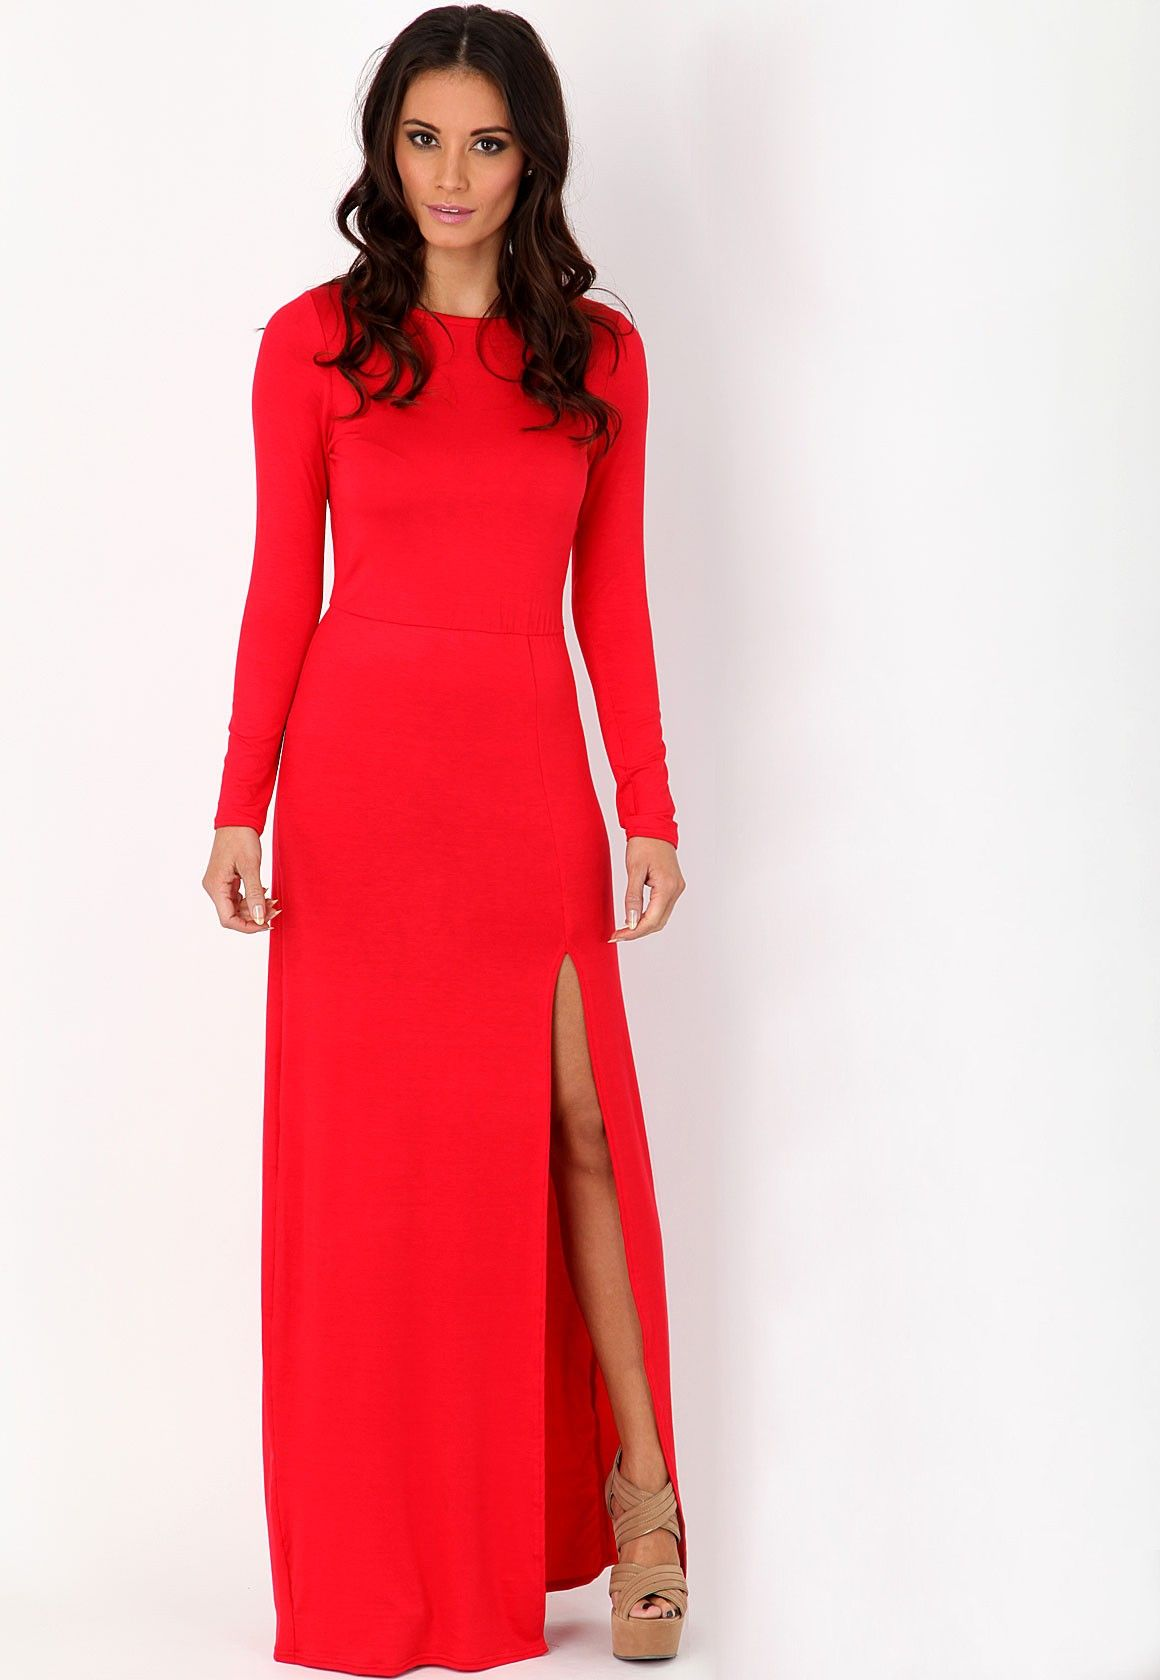 78  images about Long Sleeve Maxi Dress on Pinterest - ASOS- Frock ...